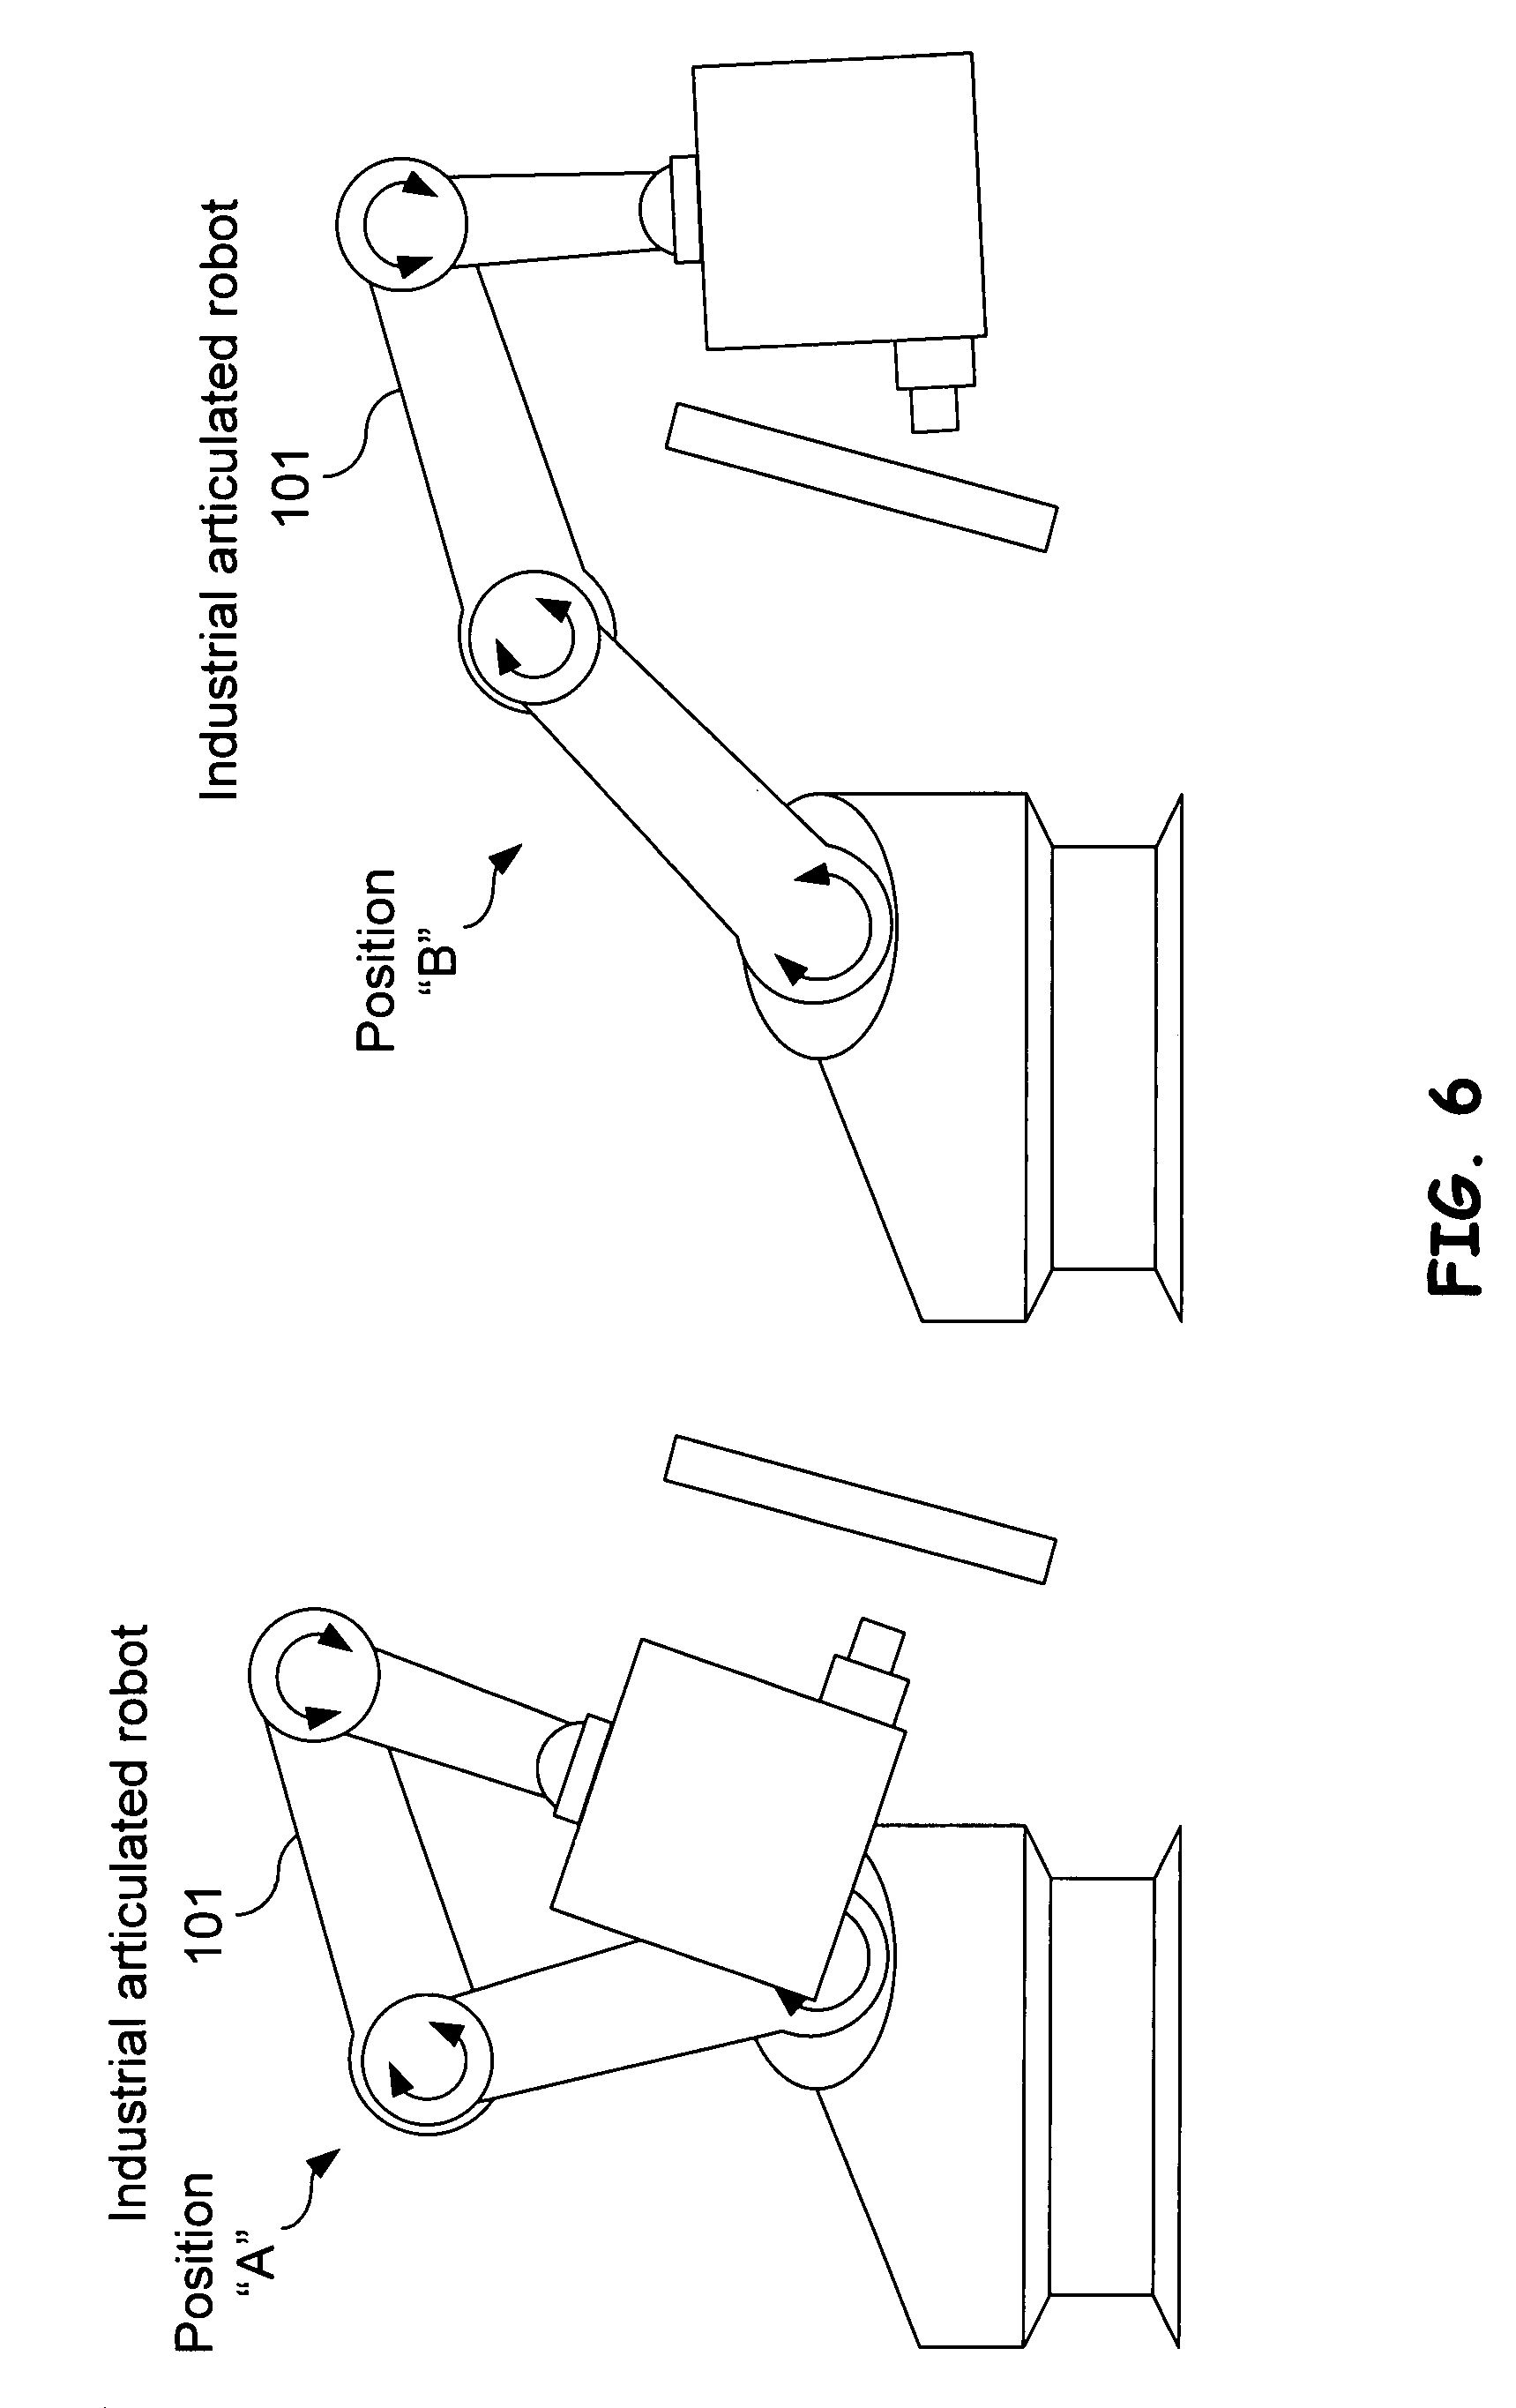 Articulated Arm Ultrasound : Patent us articulated robot for laser ultrasonic